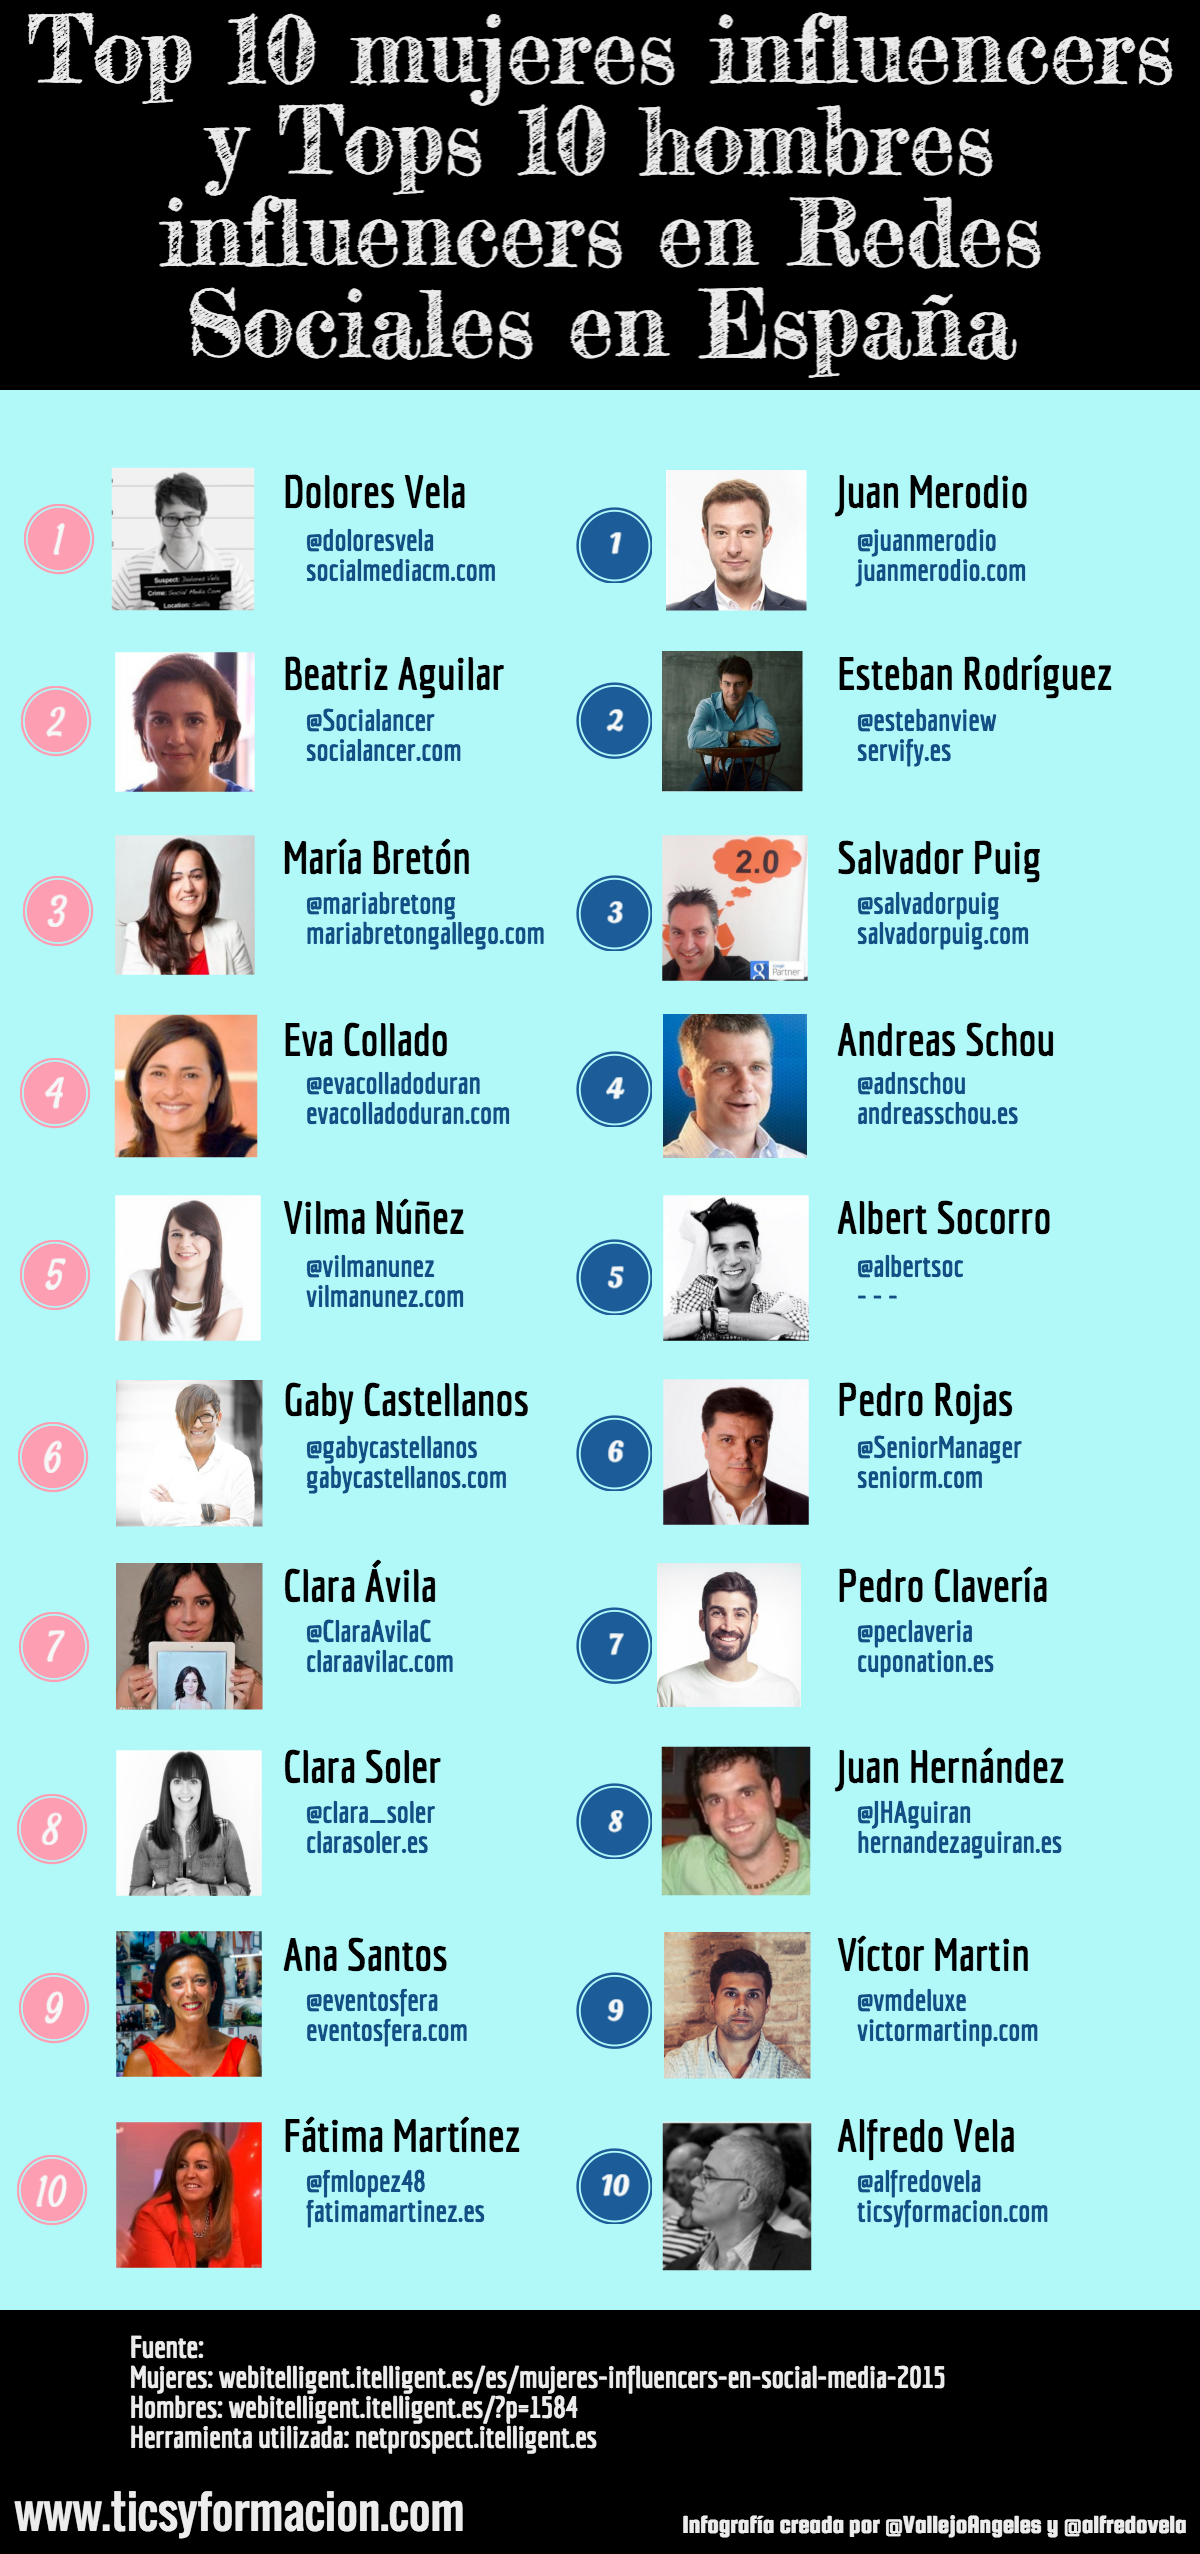 10 Great Examples Of Using Infographics For Education: Top 10 Influencers Mujeres / Top 10 Hombres En Redes